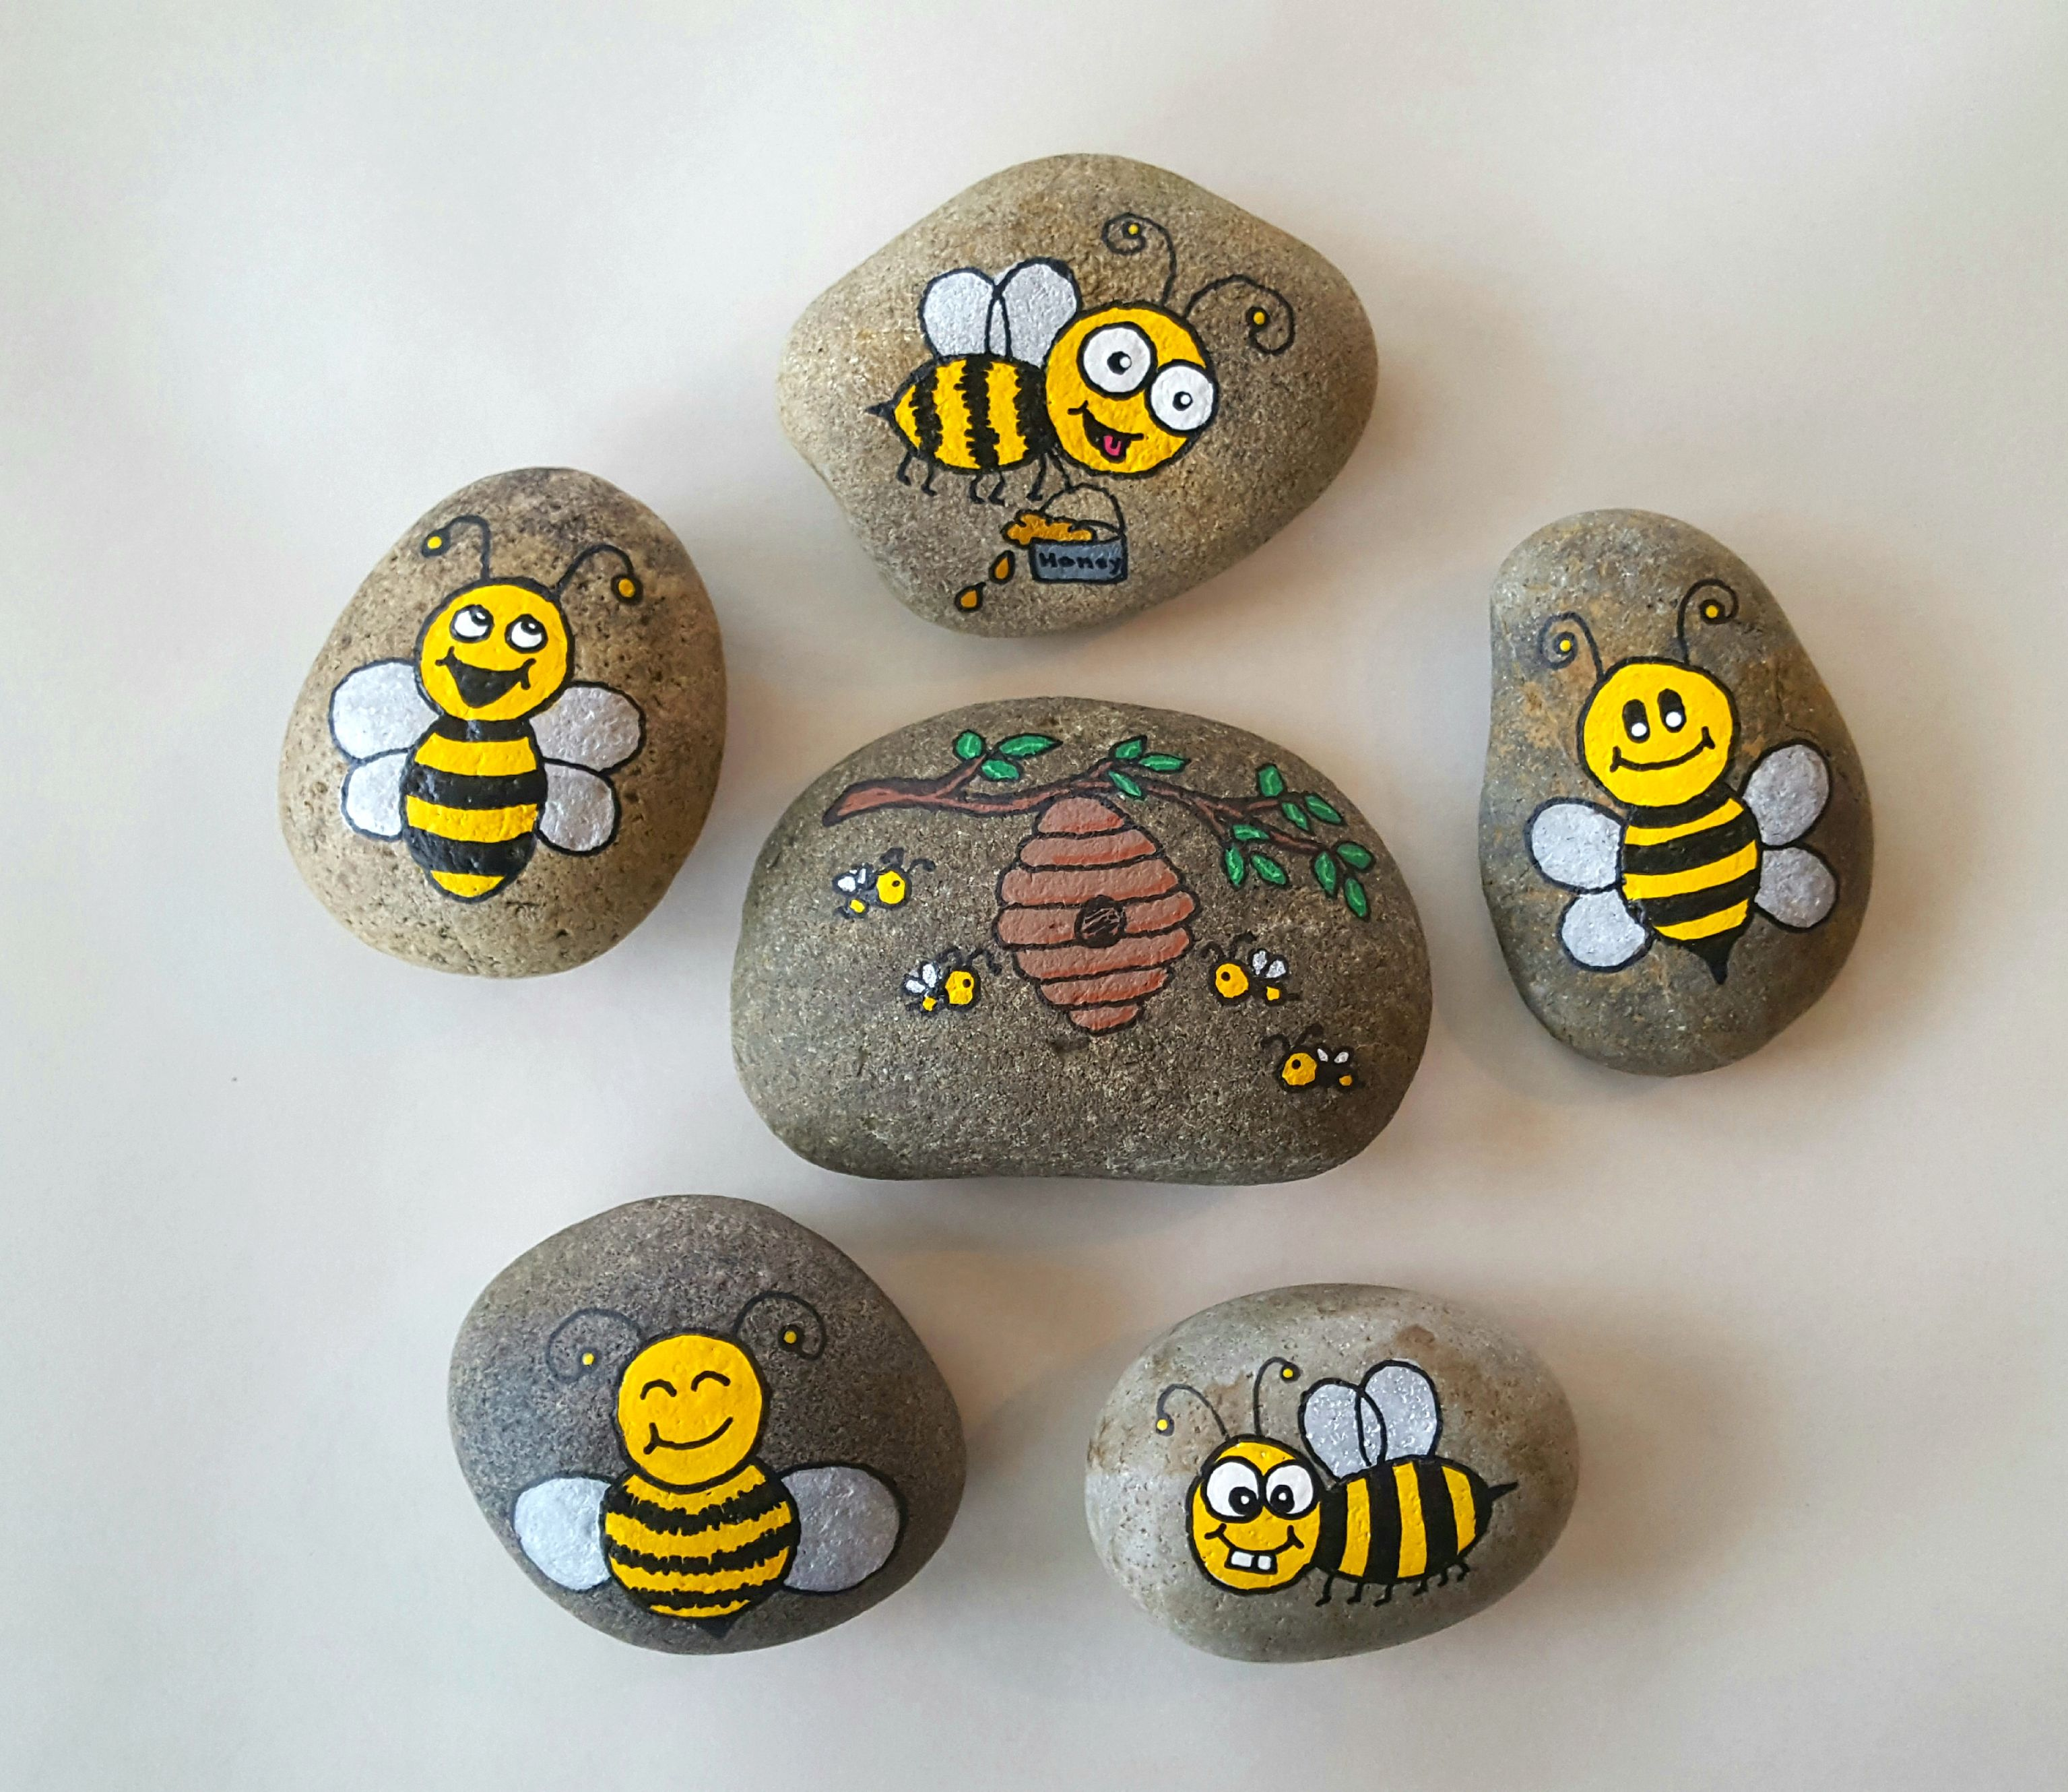 Bees Painted Rocks Bee Painting Painted Rock Animals Painted Rocks